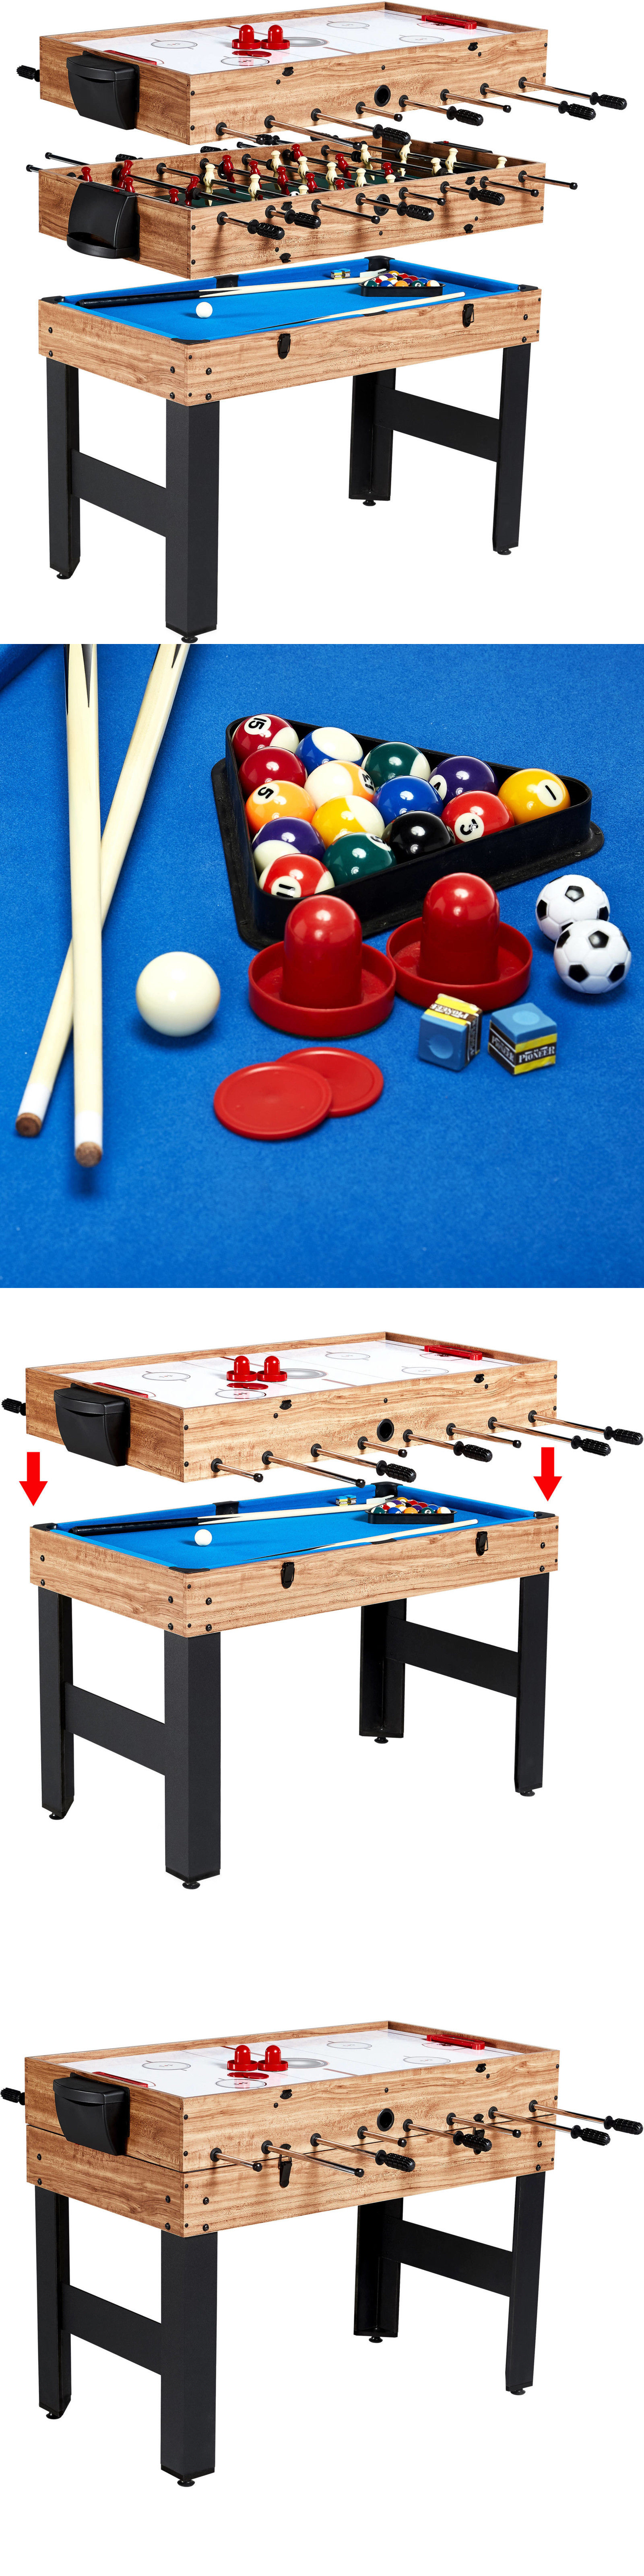 Other Indoor Games 36278: Multi Game Table Billiards Foosball Pool Soccer  Indoor Kids Arcade 3